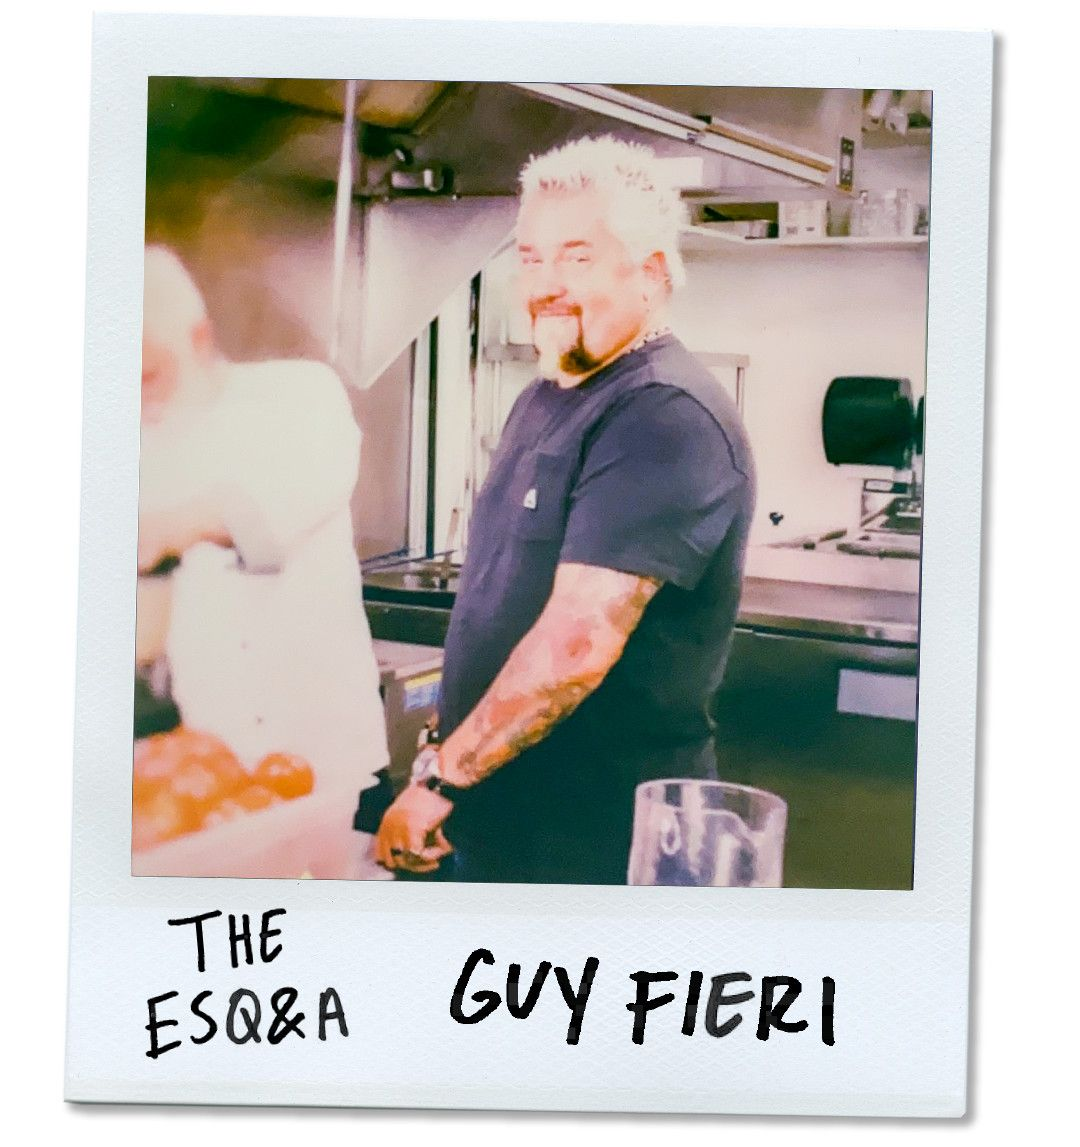 Guy Fieri Knows How to Laugh At Himself. That's Why He Has Instagram's Best Meme Account.